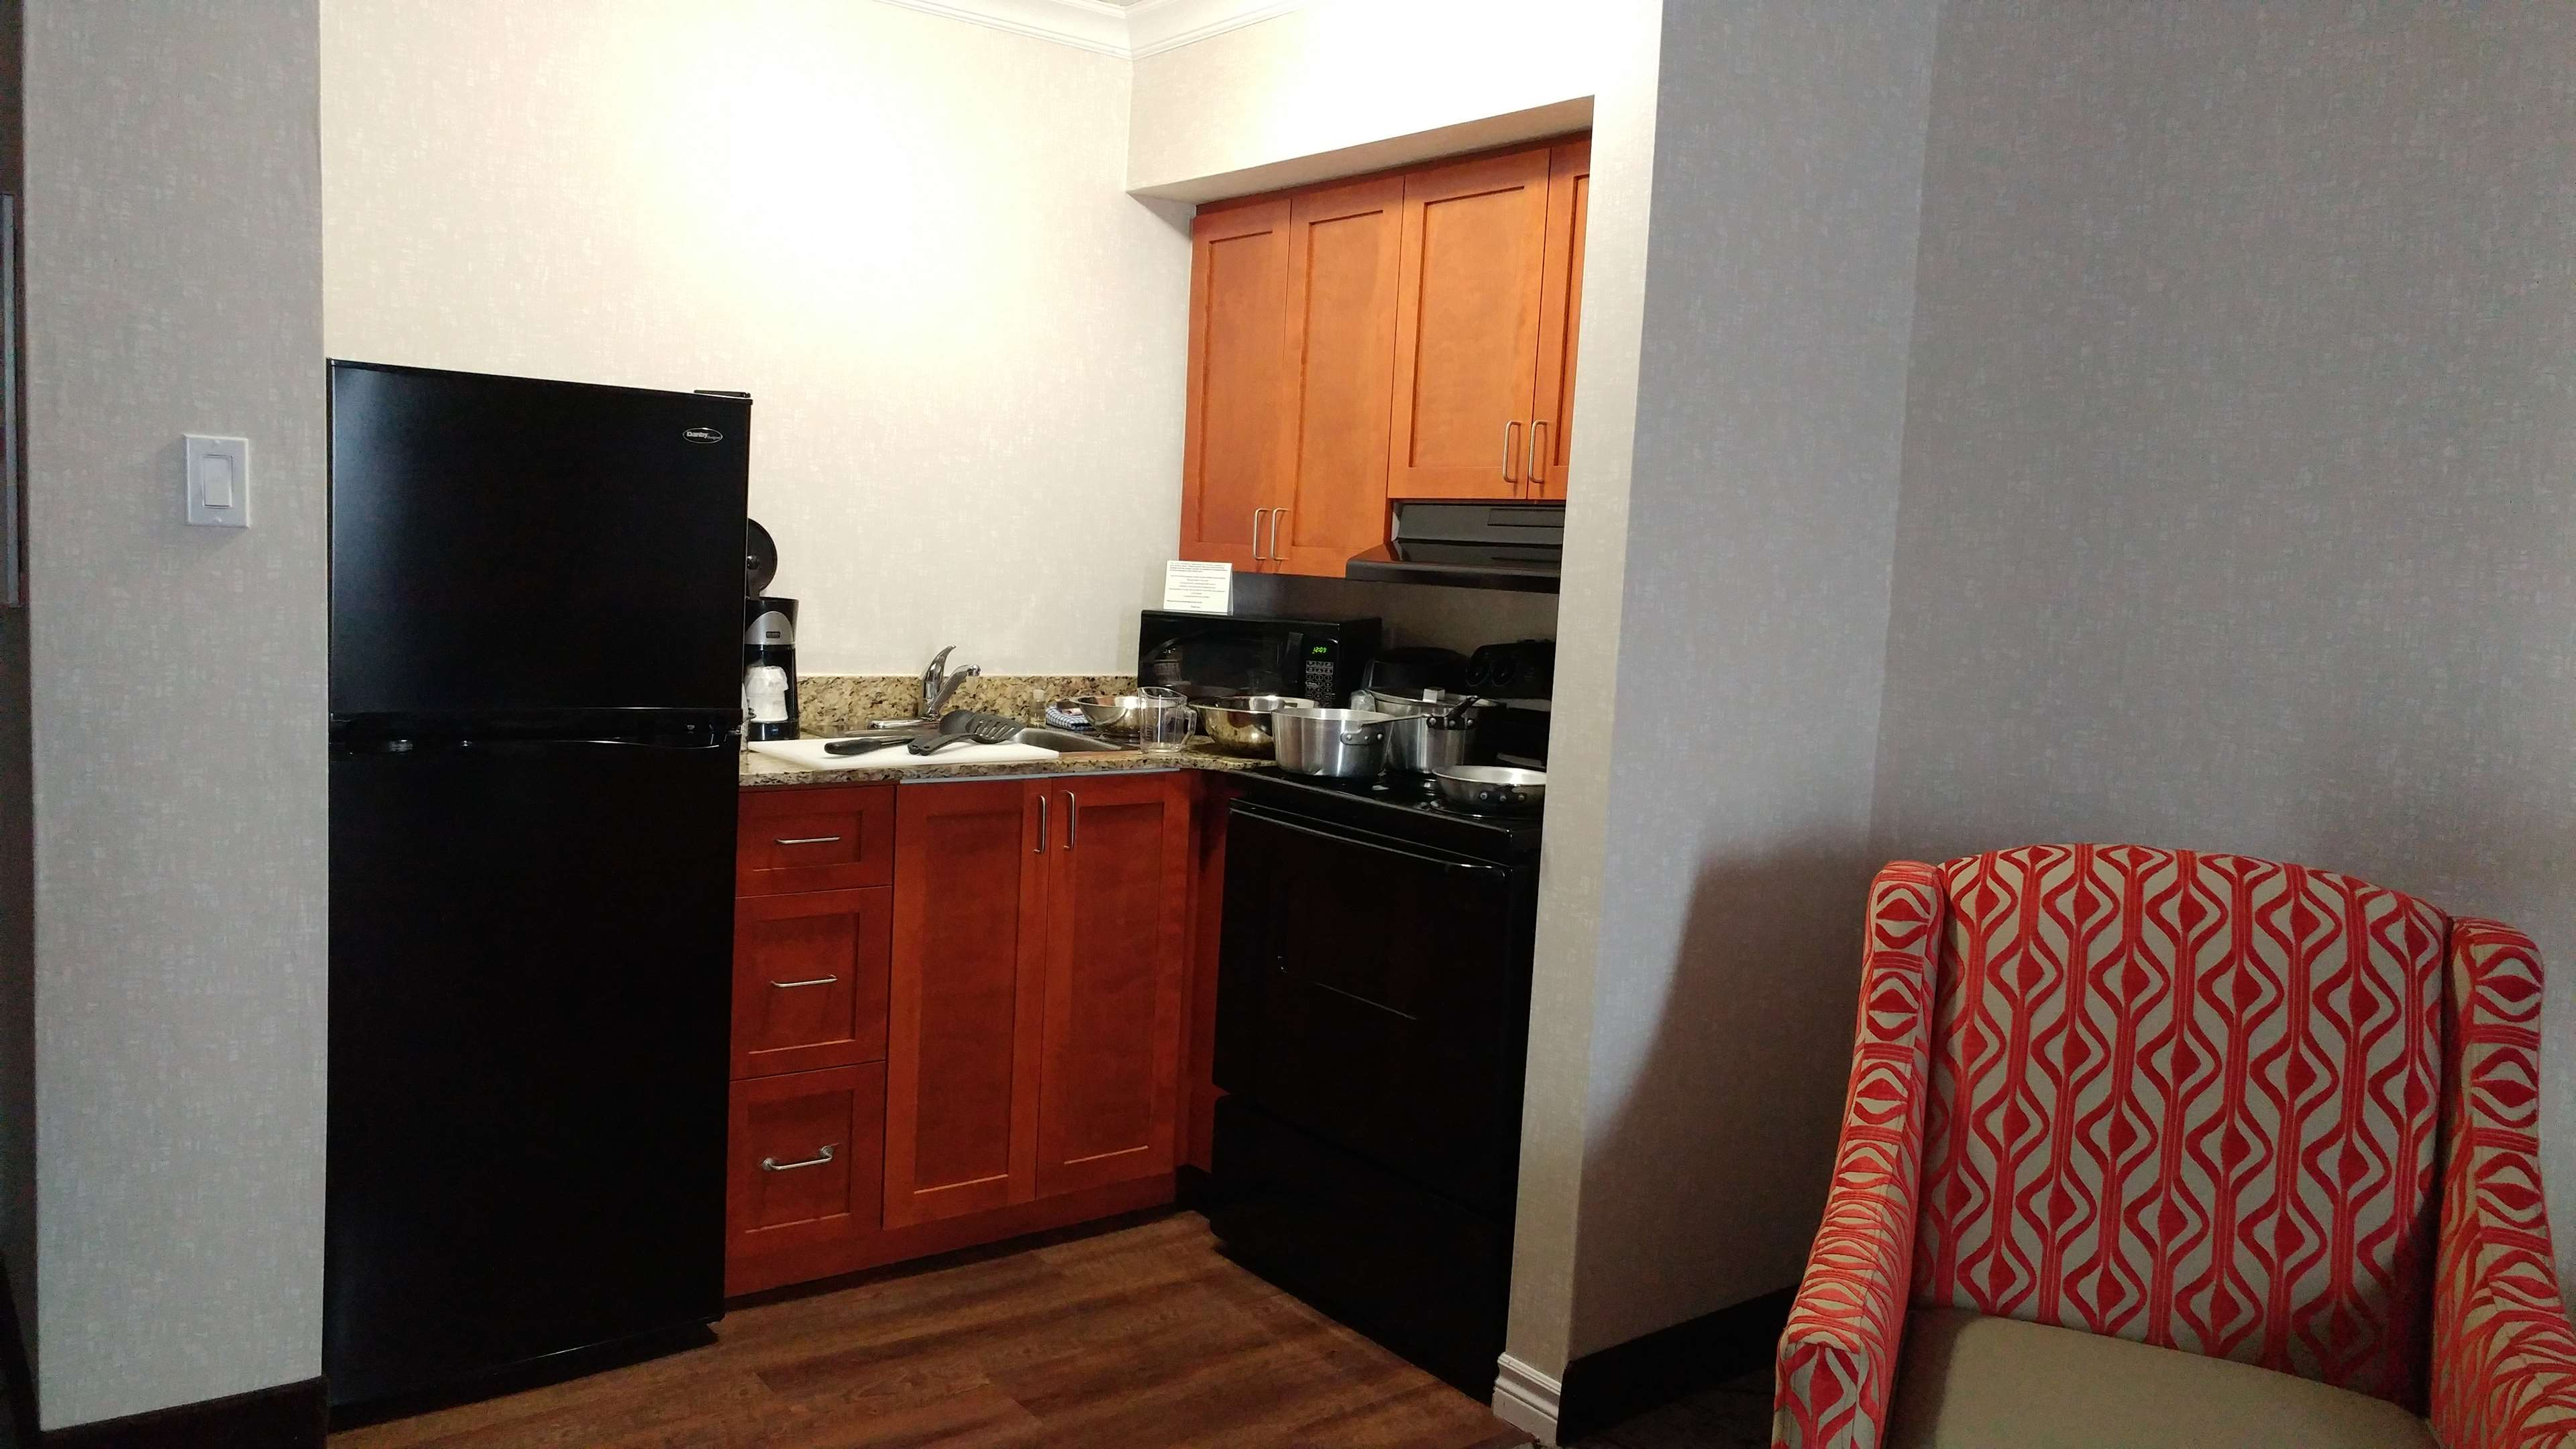 Best Western Plus Rose City Suites in Welland: Kitchen area with kitchen supplies on display